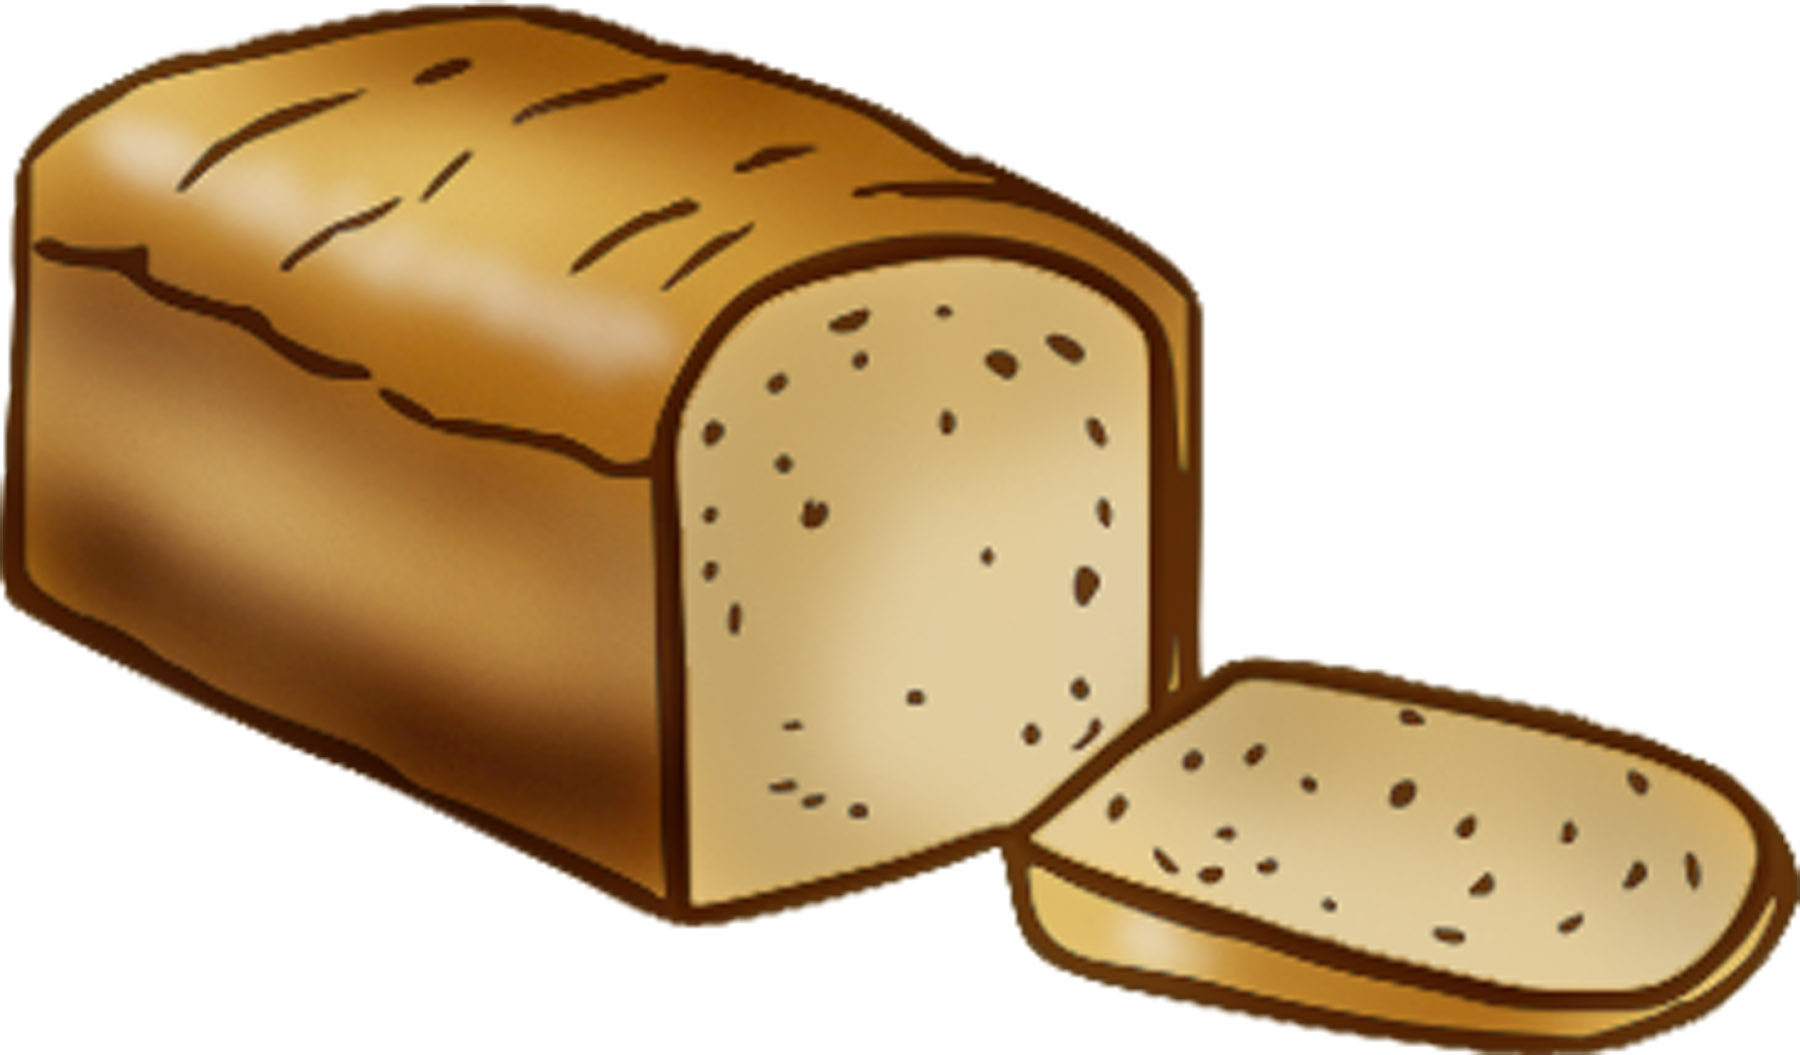 Loaf Of Bread Clipart Group (+), HD Clipart.